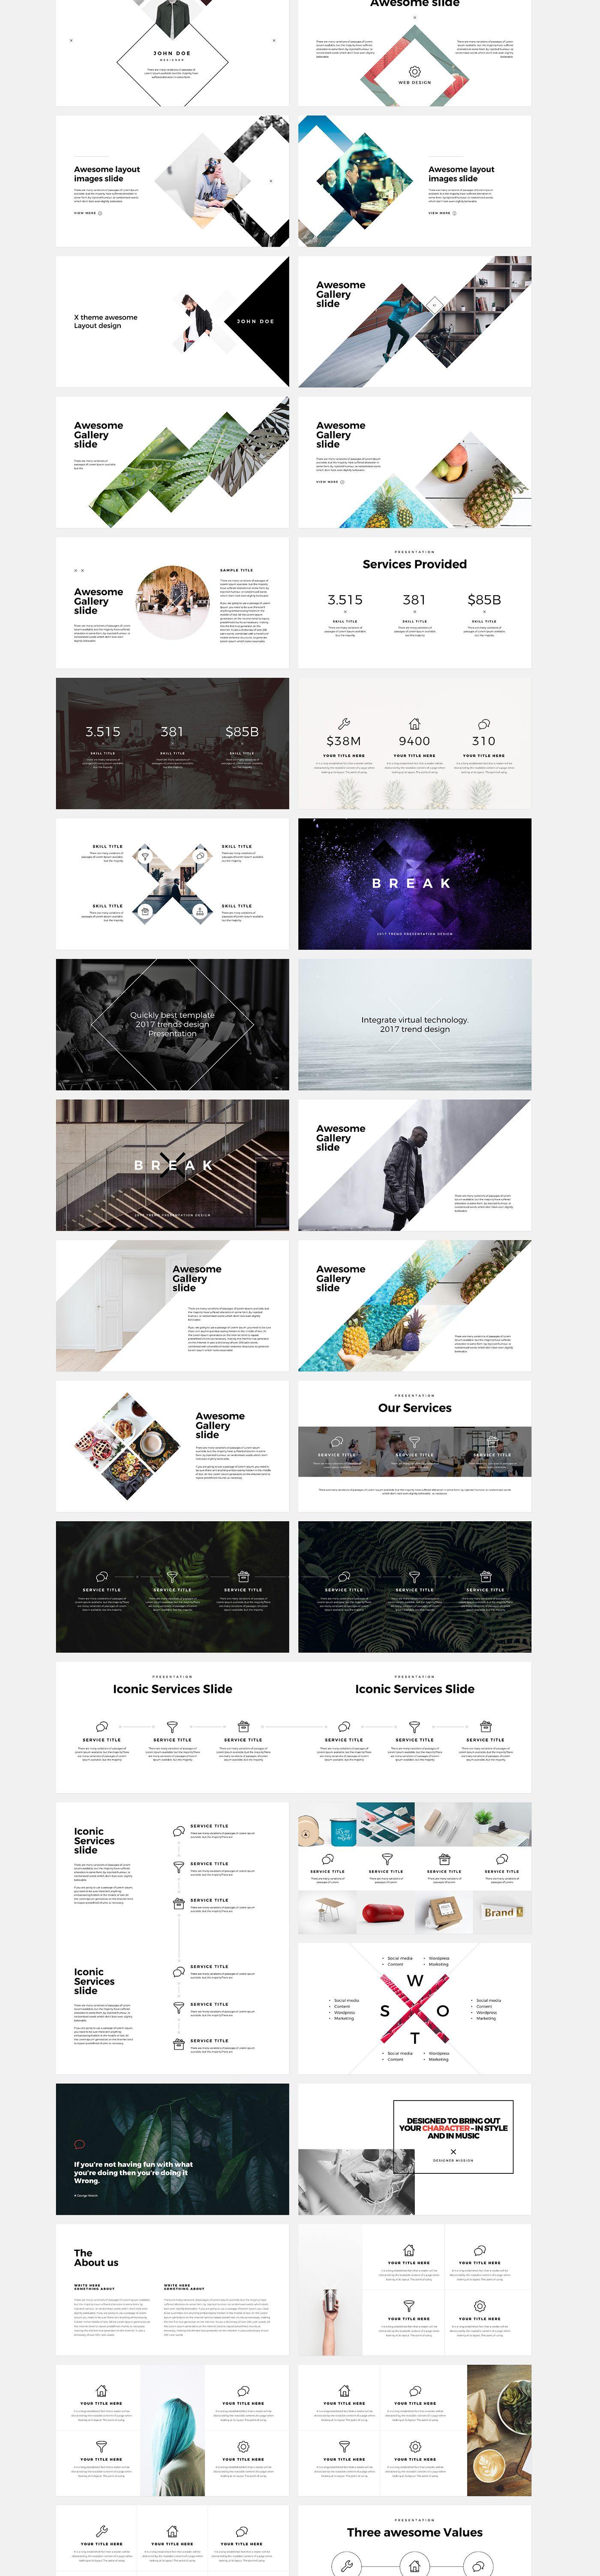 X free powerpoint keynote template on behance web design x free powerpoint keynote template on behance toneelgroepblik Gallery